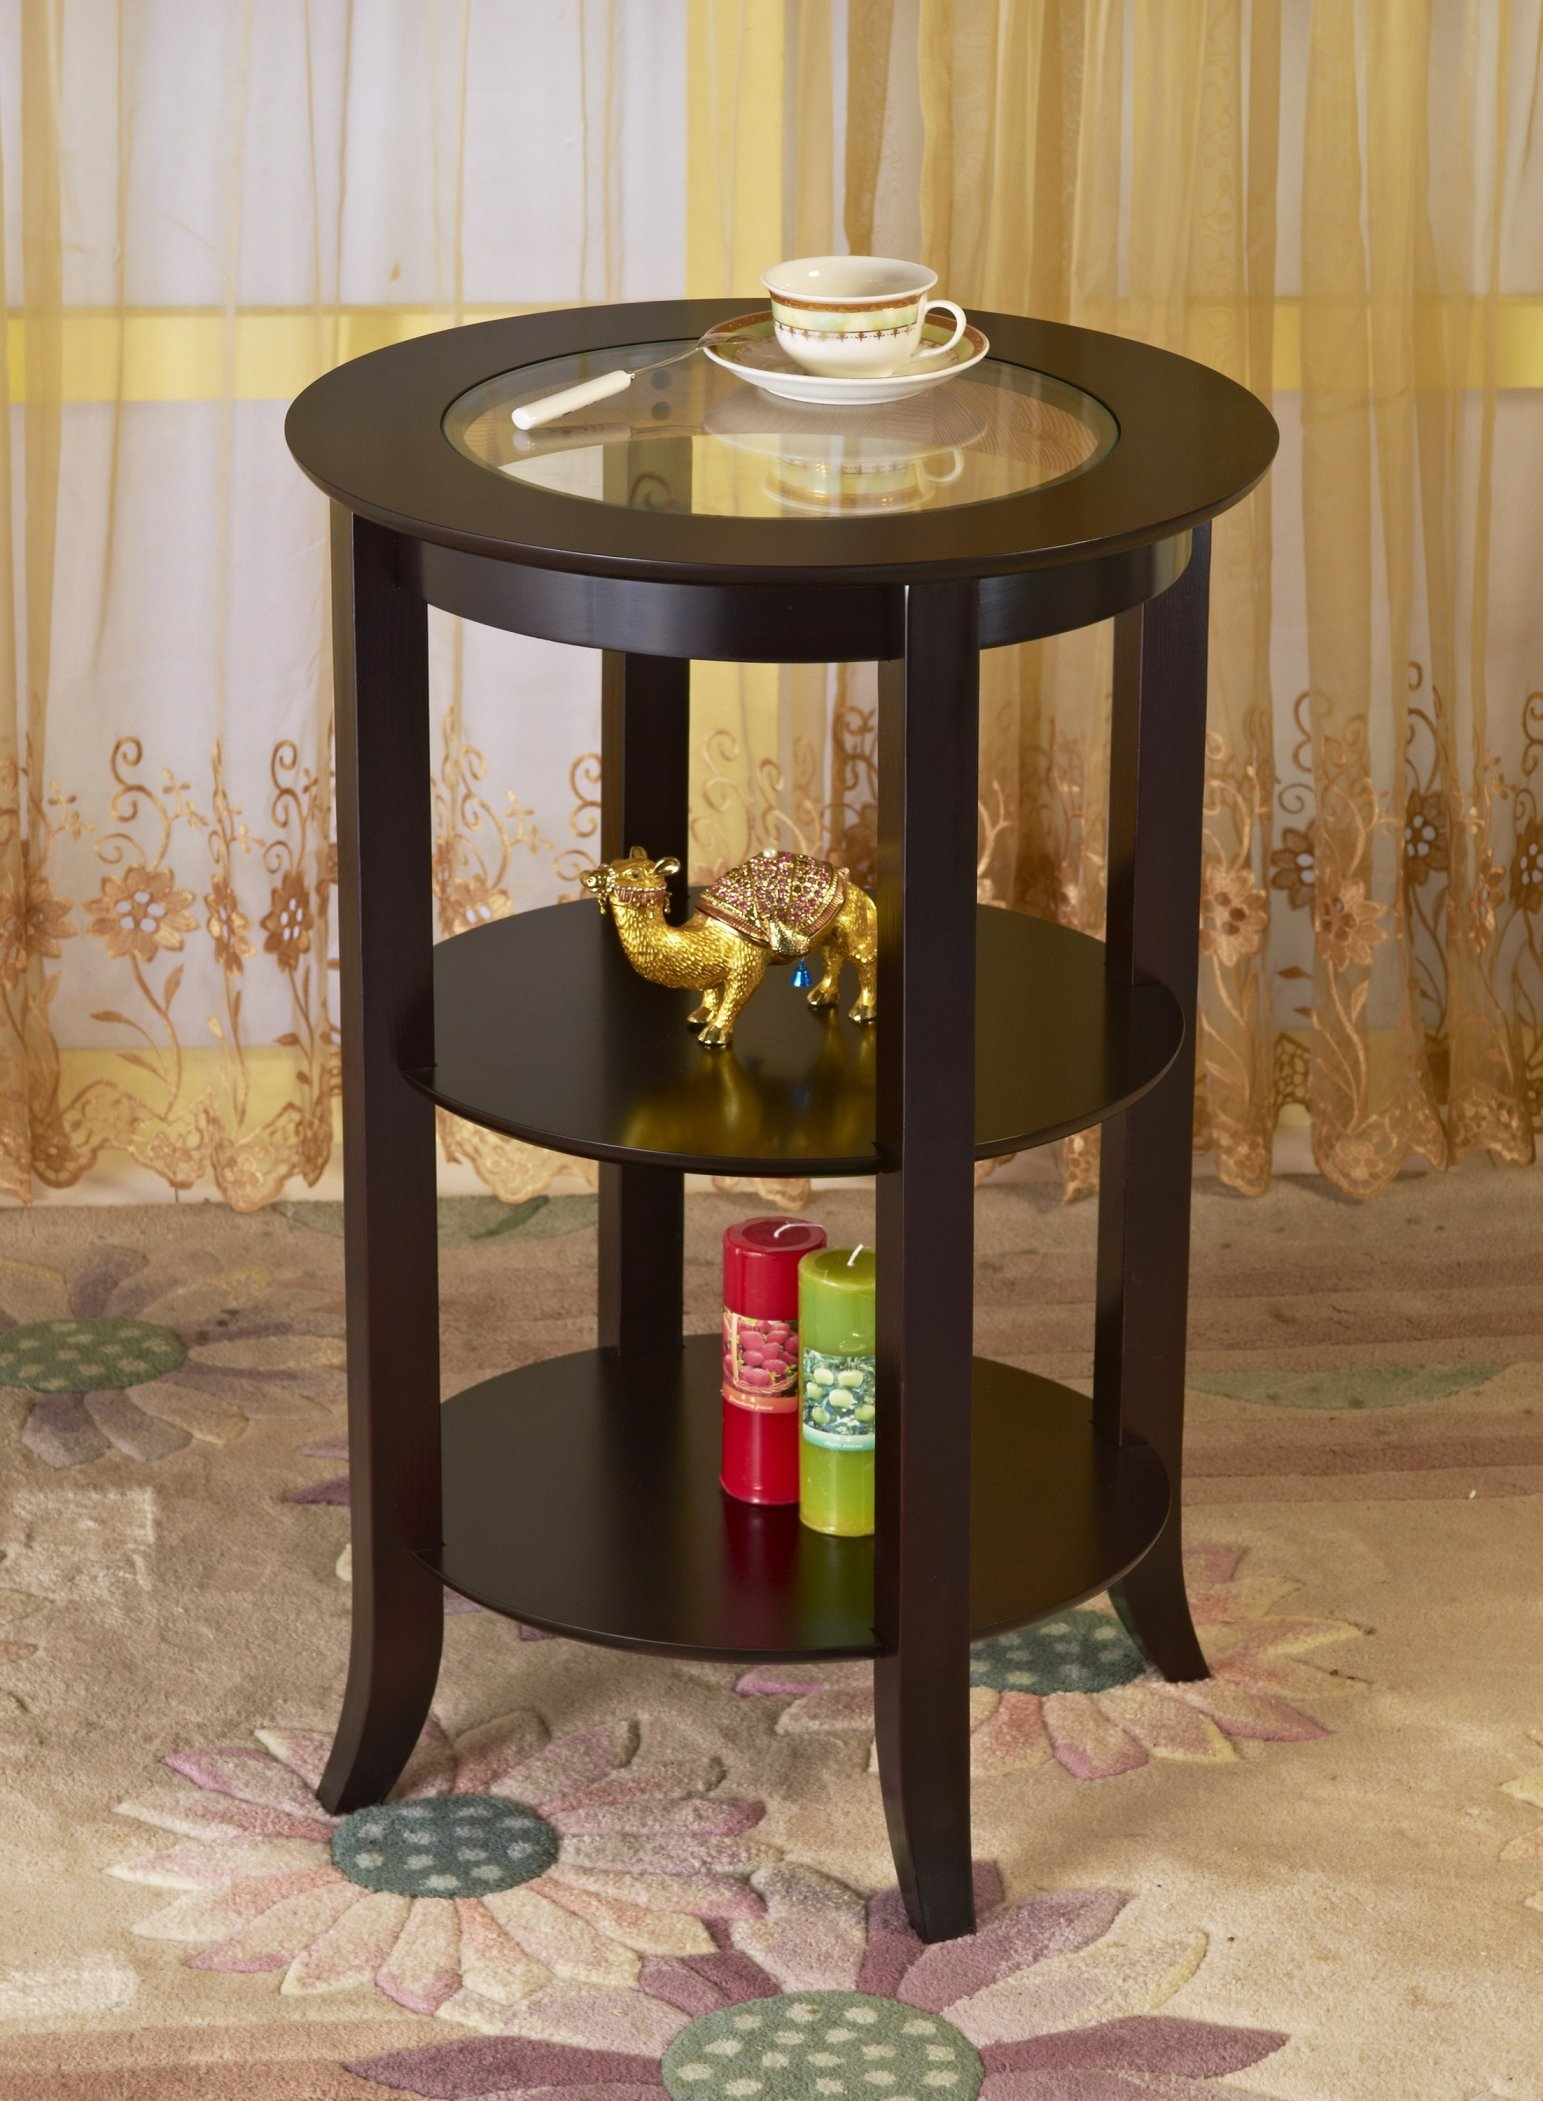 Frenchi Furniture Wood Round Side /Accent Table , Inset Glass, Two Shelves by Frenchi Home Furnishing (Image #3)